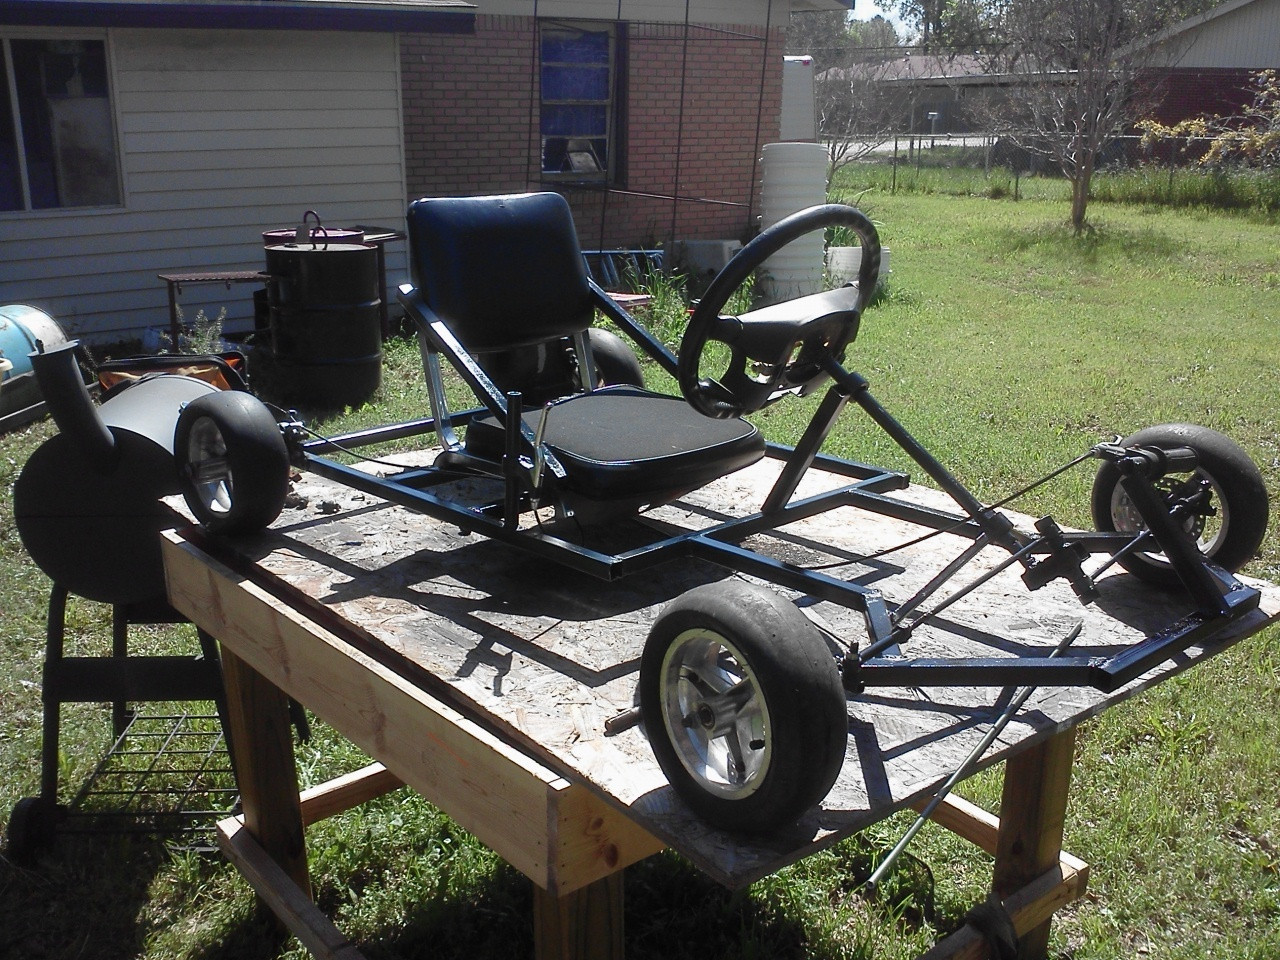 Best ideas about DIY Go Kart Plans . Save or Pin Homemade Karting Plans Homemade Porn Now.